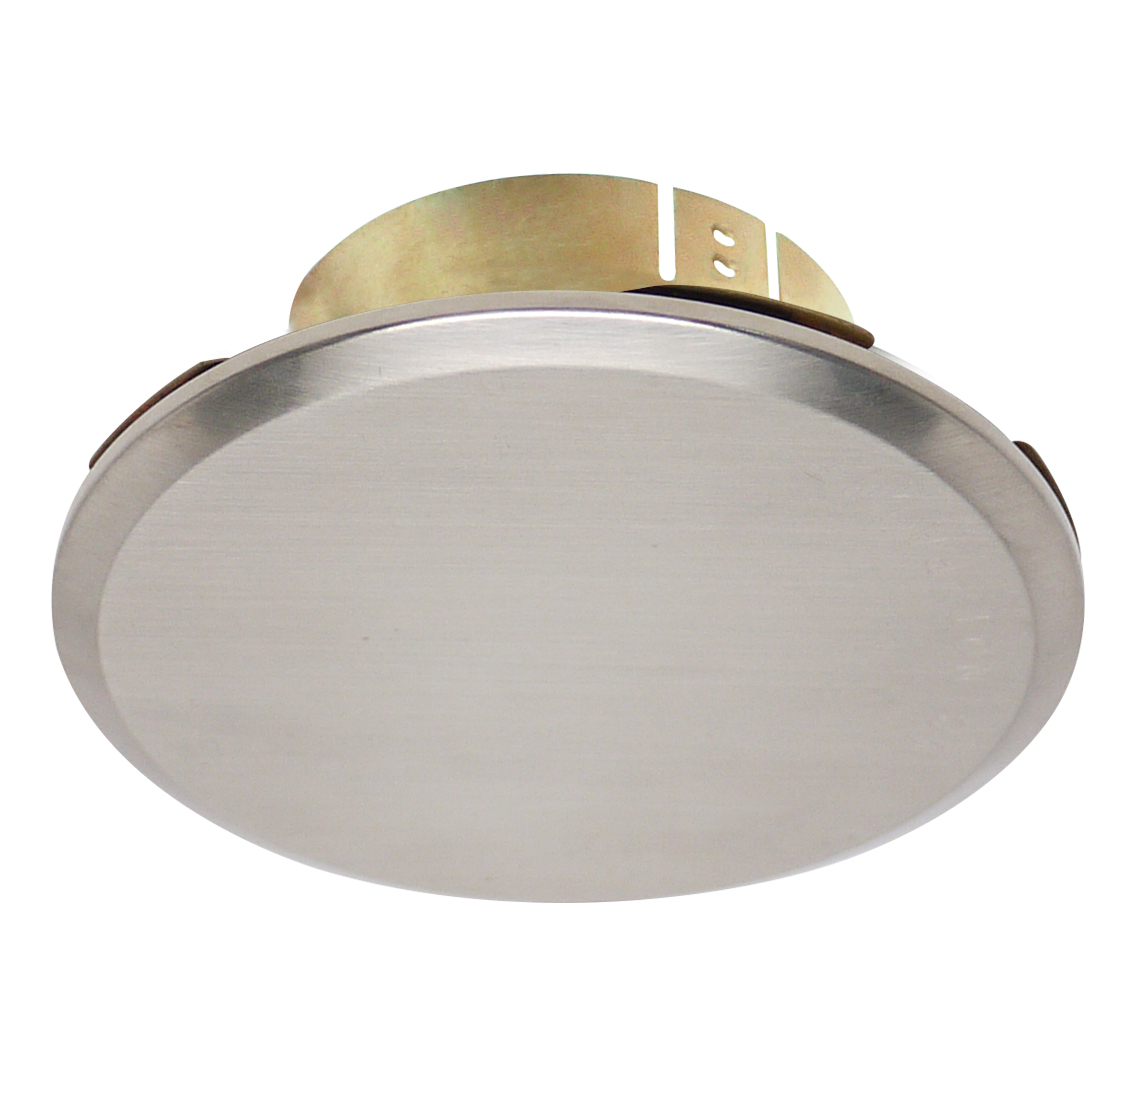 Cover plate for rc sprinklers 3 14 round nickel brushed hover to zoom arubaitofo Image collections